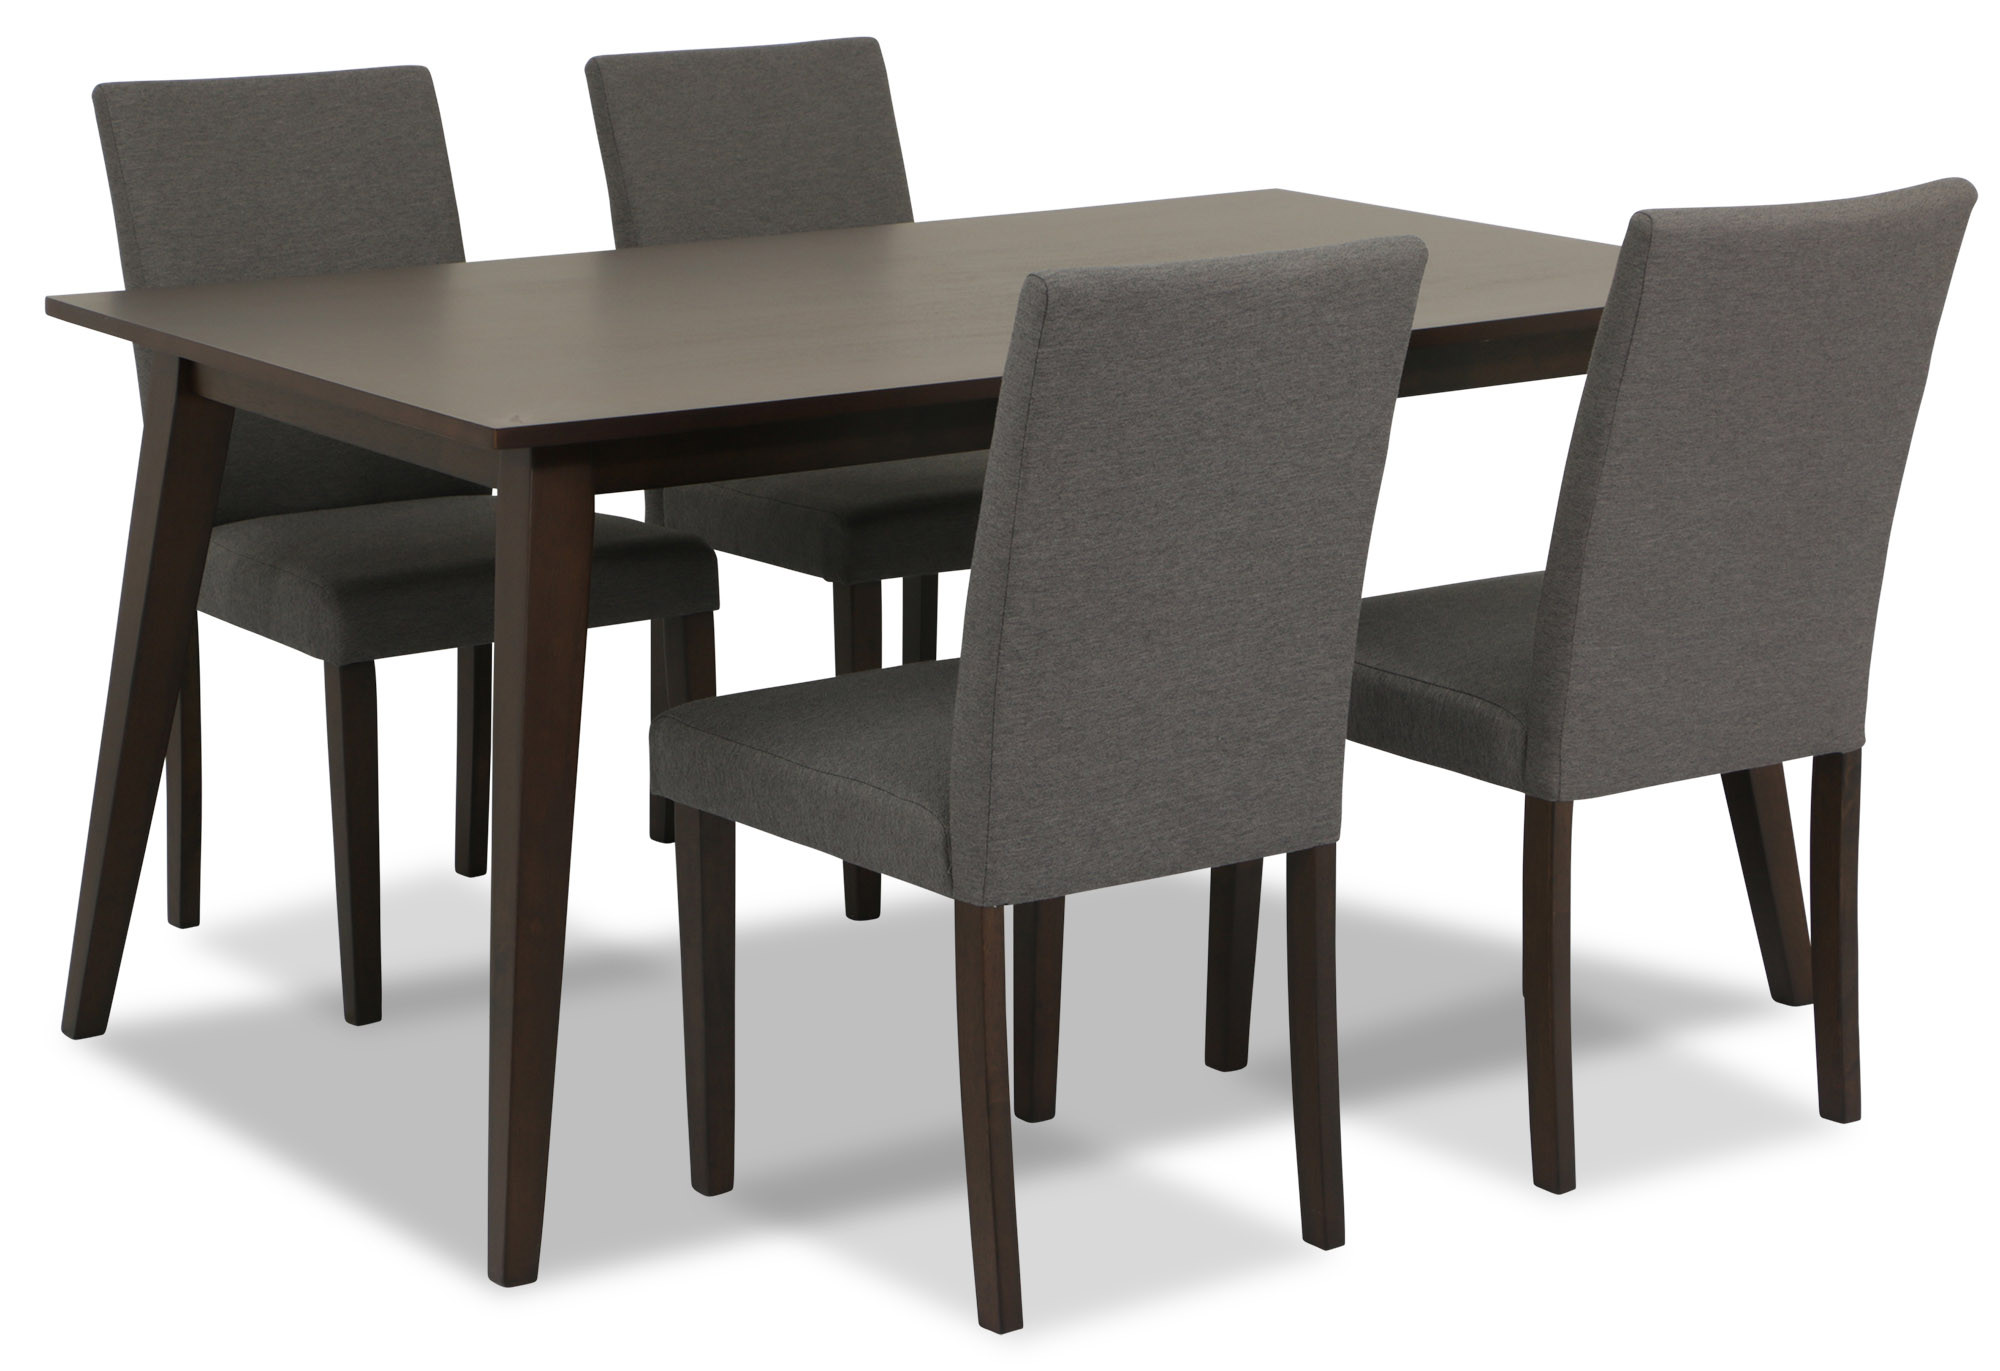 dining carolyn kit hardwood dinning furniture finishes sets shop in set quality room